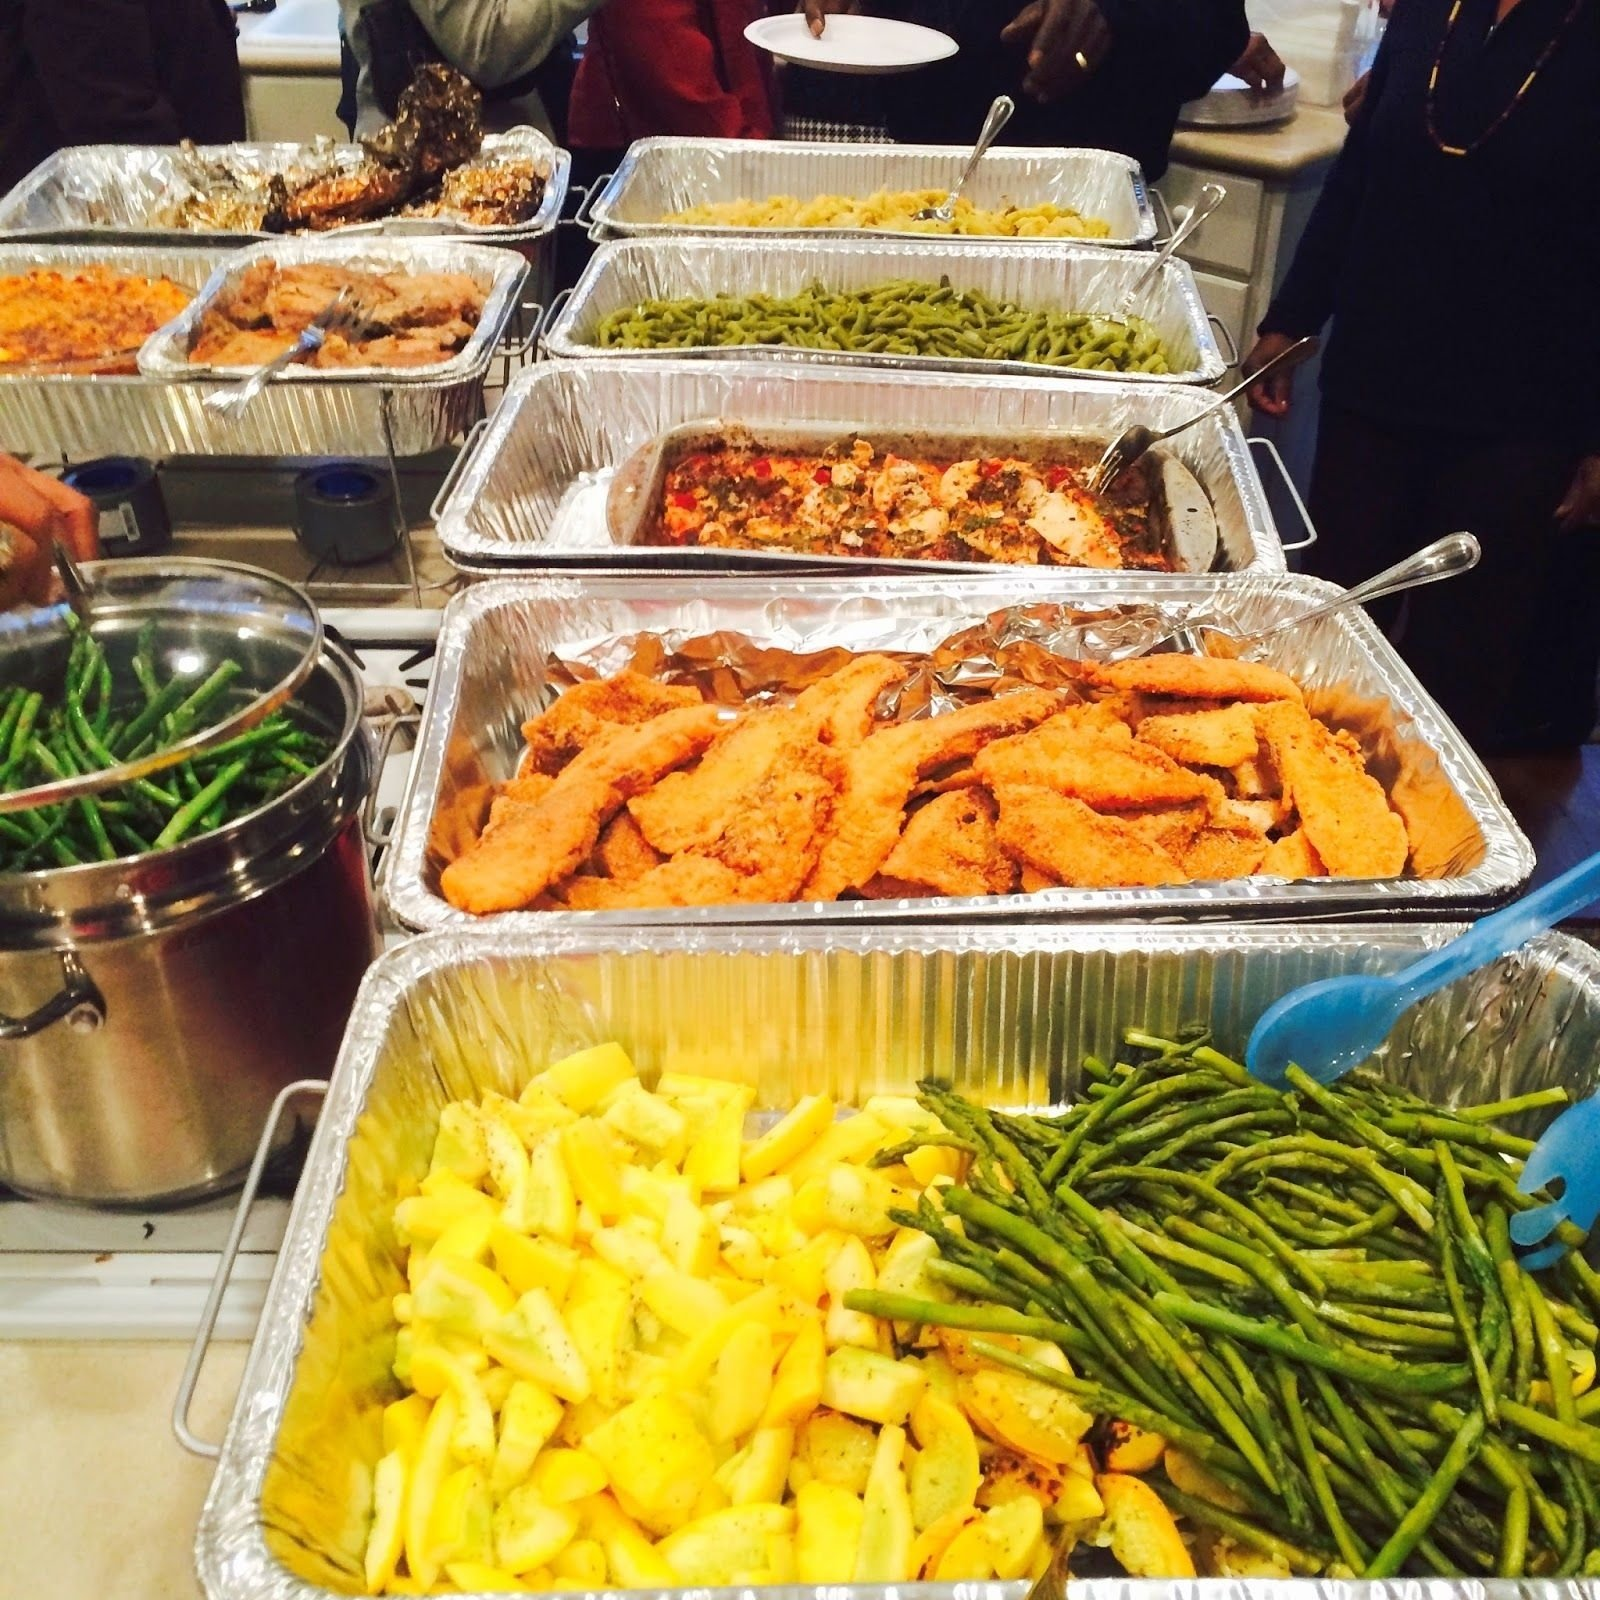 10 Great Dinner Ideas For Large Groups cooking a diverse meal for a large group on a budget forever i 2021